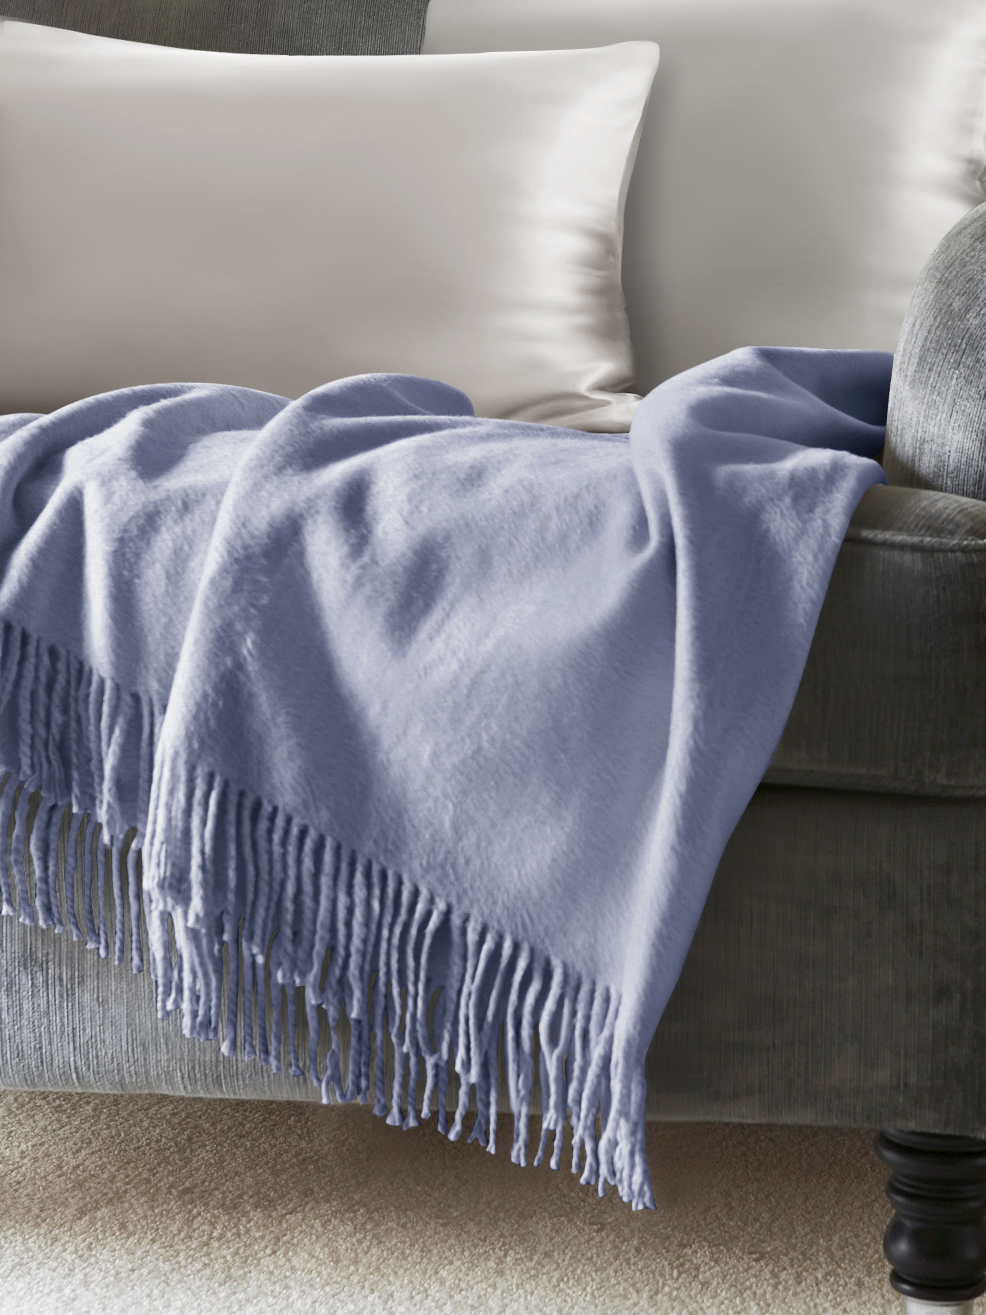 Lavender Silk Throw Blankets From Pure Mulberry Silk